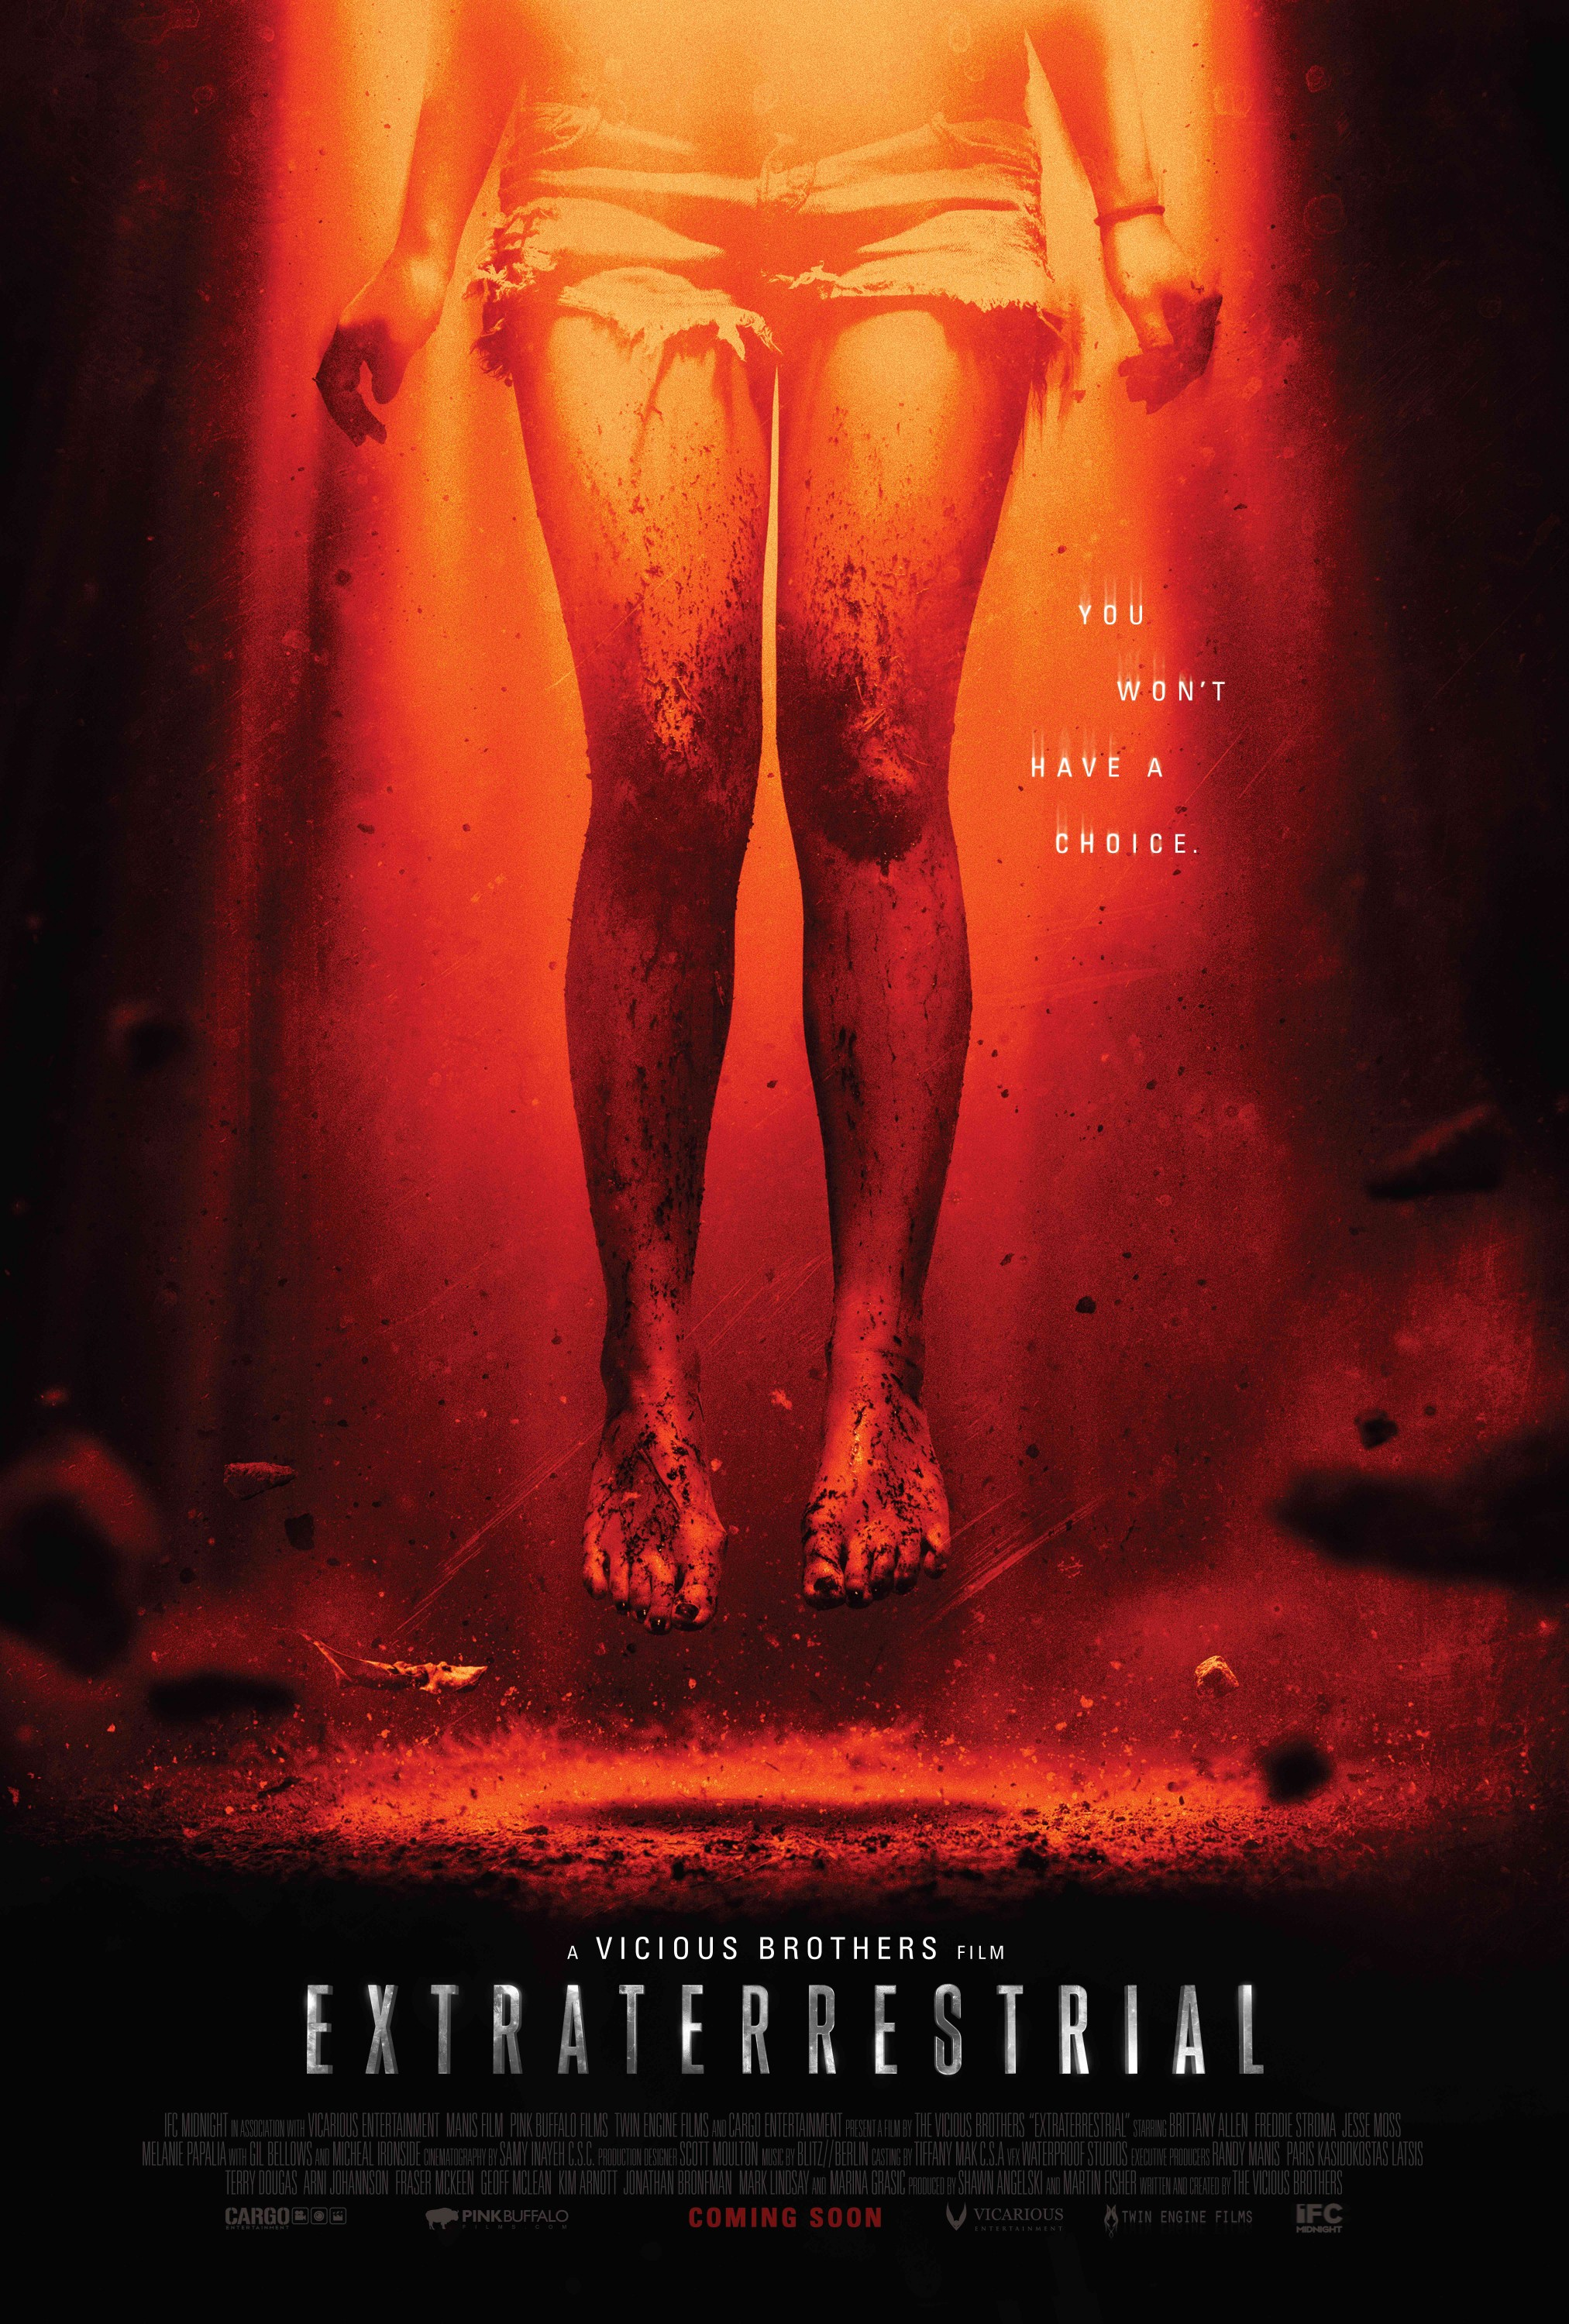 Extraterrestrial-Official Poster Banner PROMO-22SETEMBRO2014-01